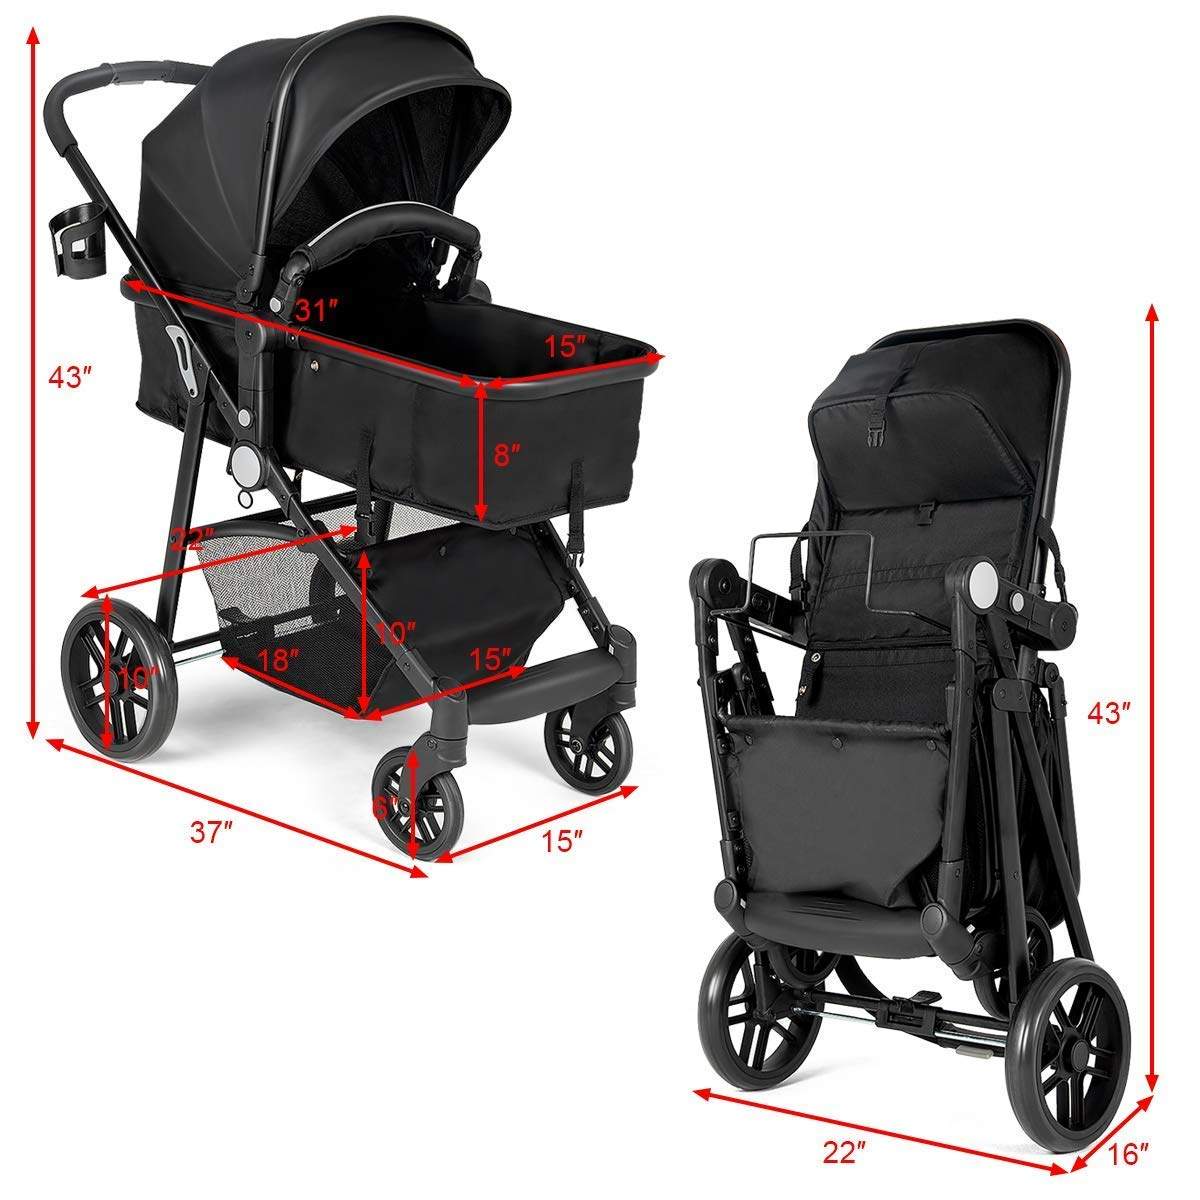 BABY JOY Baby Stroller, 2 in 1 Convertible Carriage Bassinet to Stroller, Pushchair with Foot Cover, Cup Holder, Large Storage Space, Wheels Suspension, 5-Point Harness, Deluxe Black by BABY JOY (Image #5)